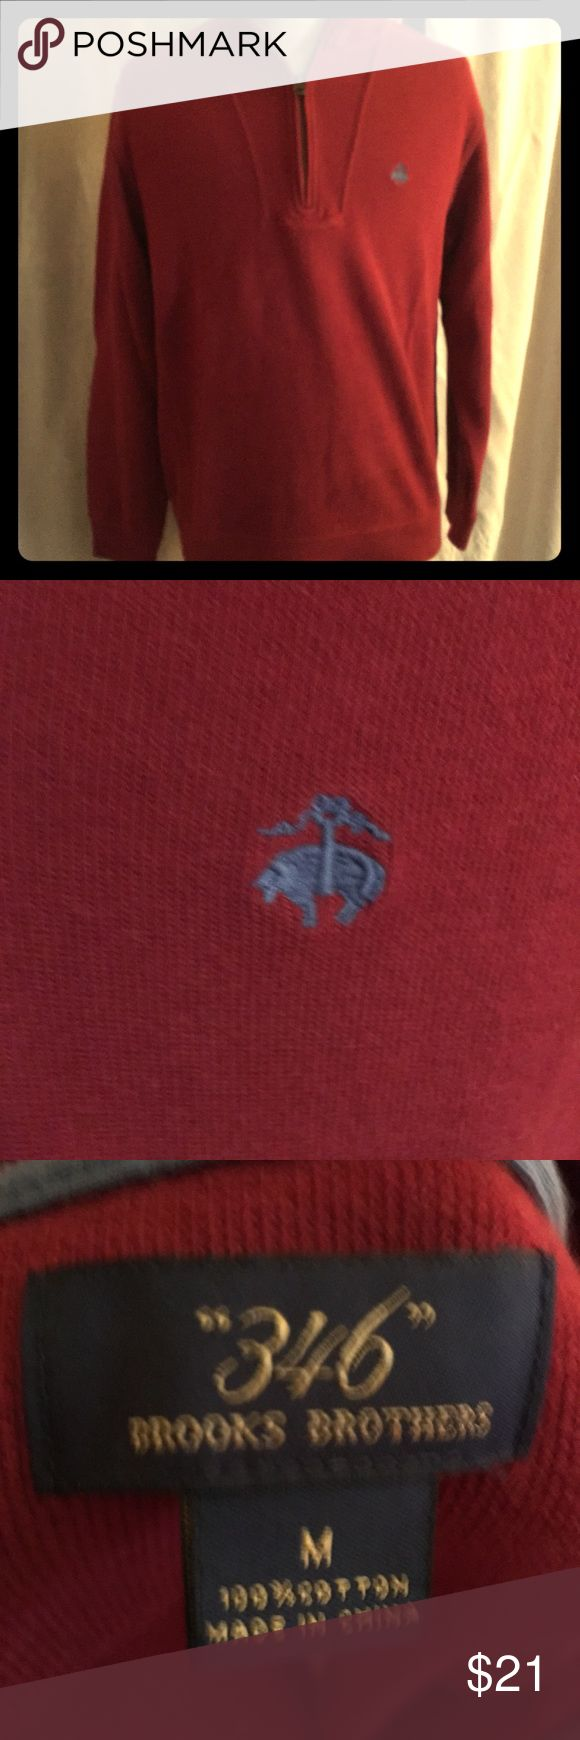 Men's Brooks Brothers collared sweatshirt Very soft! In excellent condition! Dark red color Brooks Brothers Shirts Sweatshirts & Hoodies